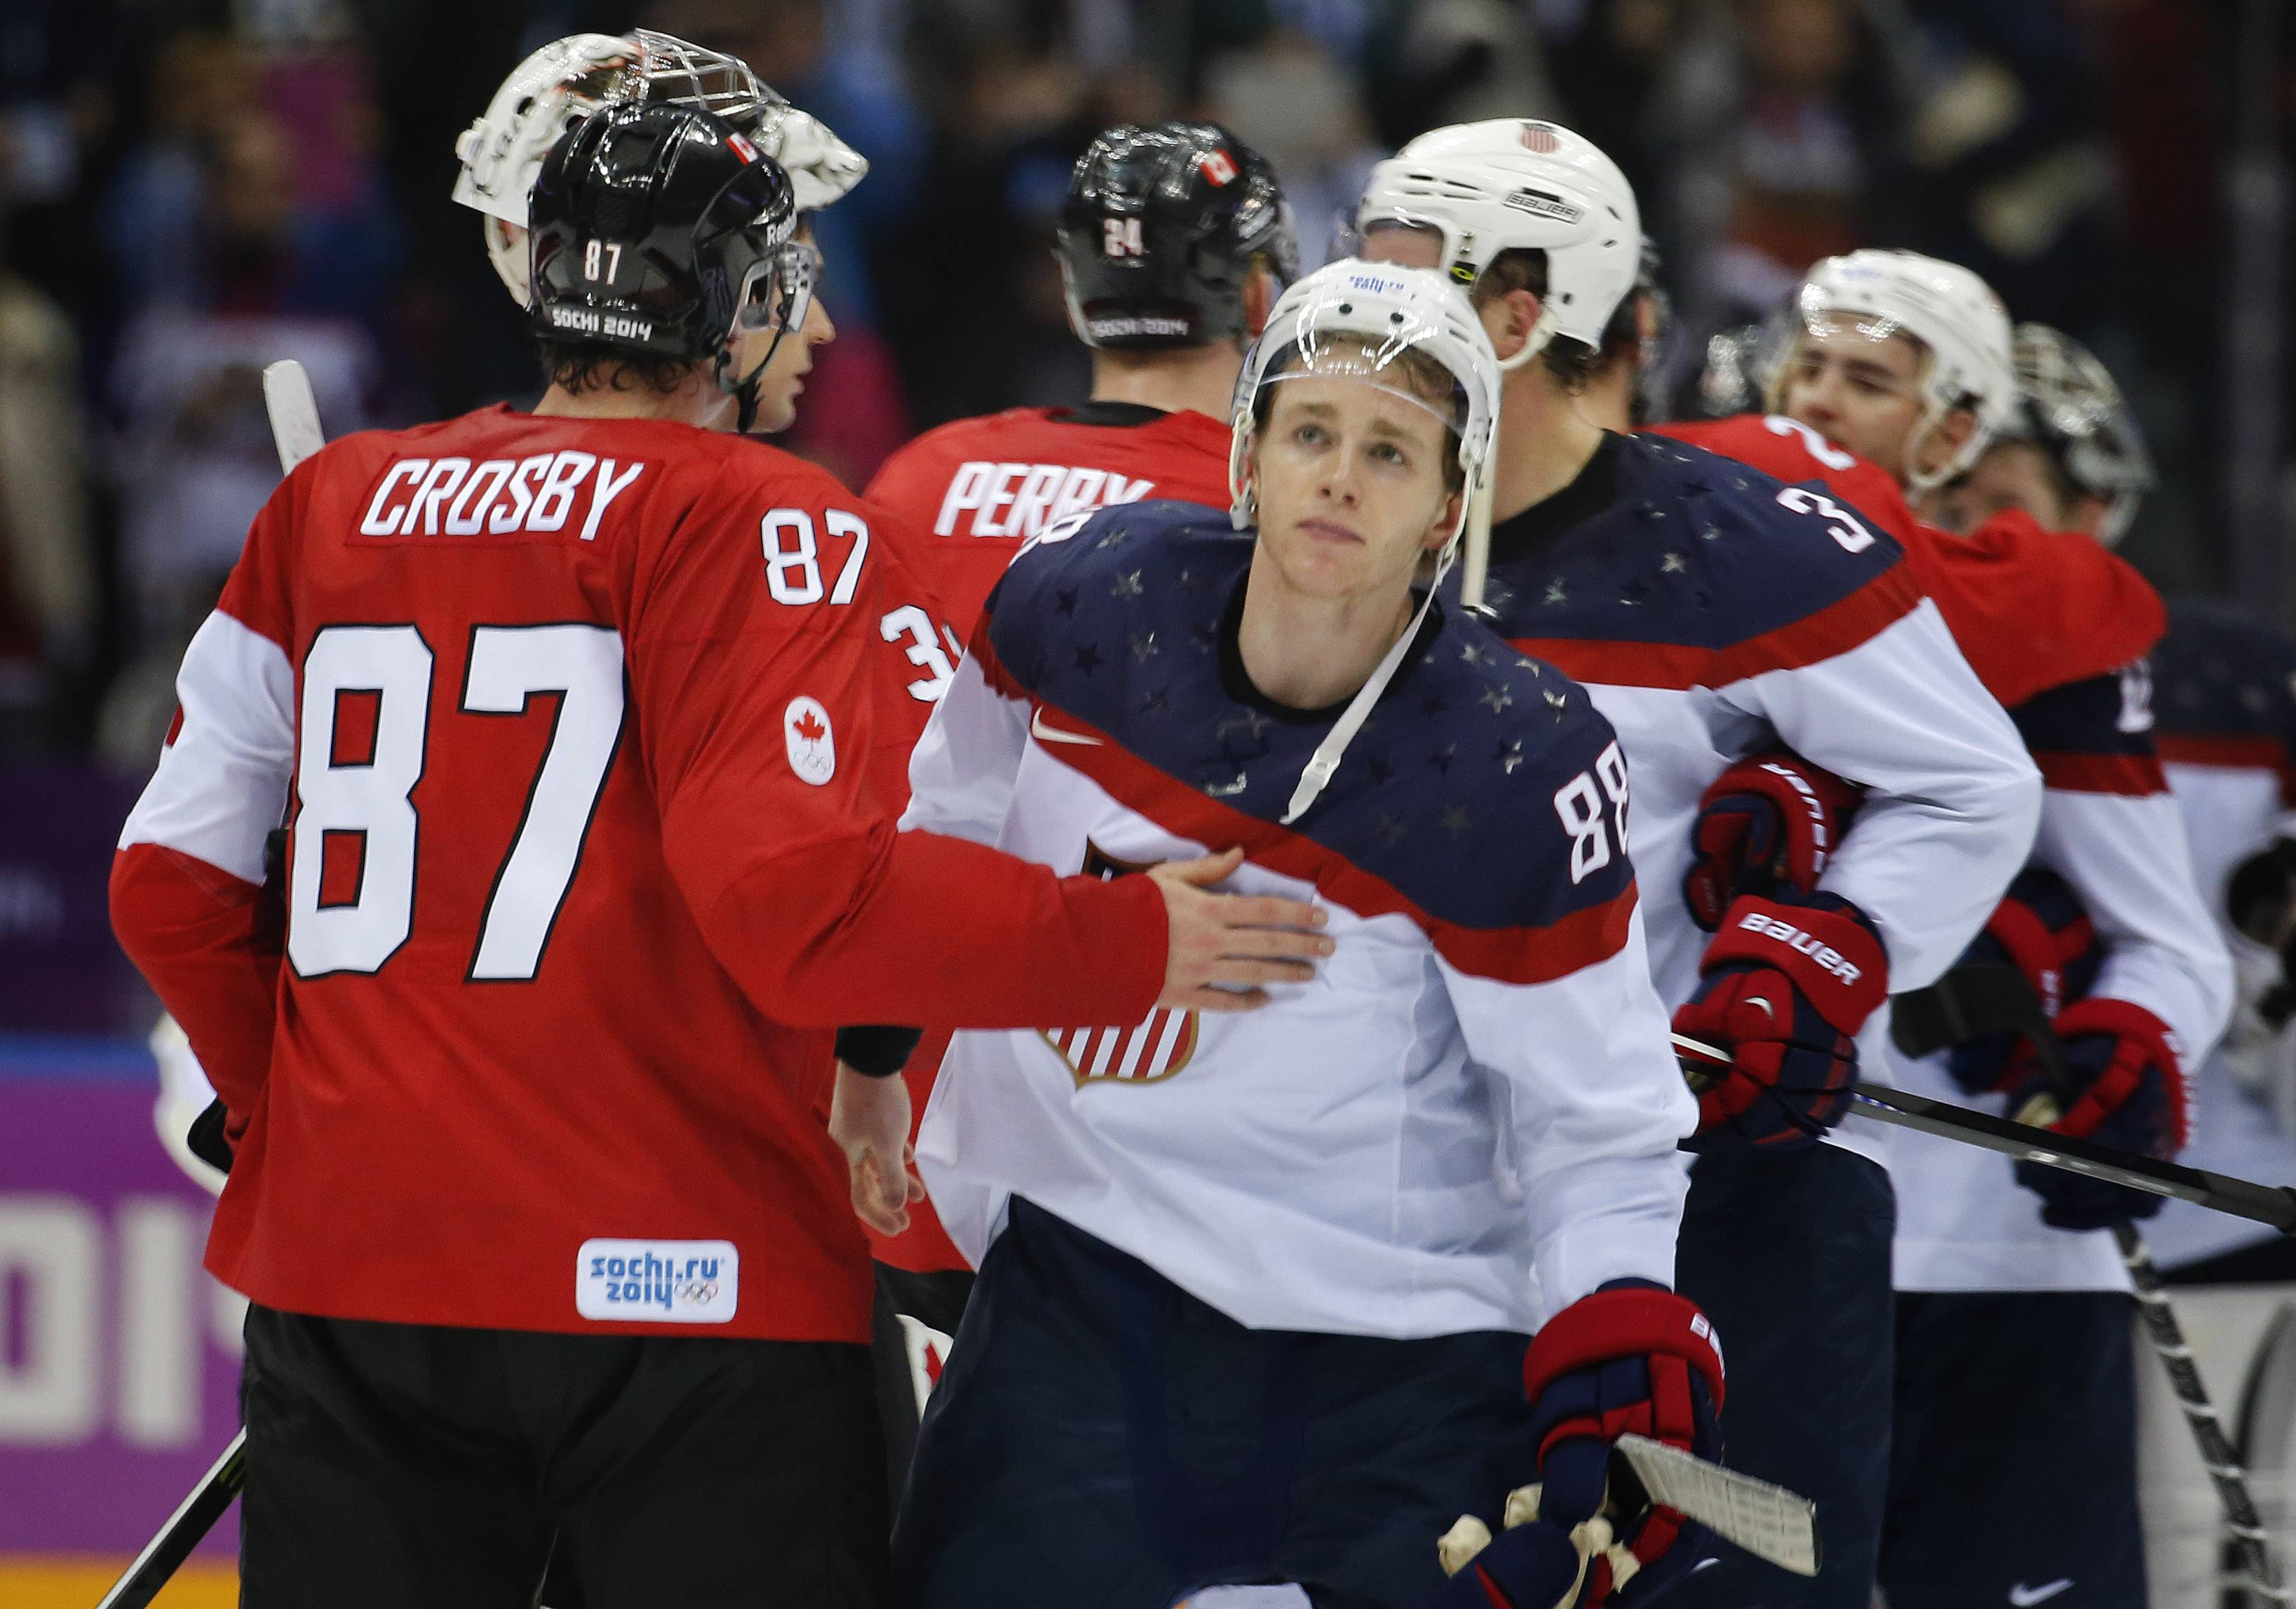 Canada forward Sidney Crosby consoles U.S. forward Patrick Kane Friday after Canada won 1-0 in a men's semifinal ice hockey game at the 2014 Winter Olympics in Sochi, Russia.